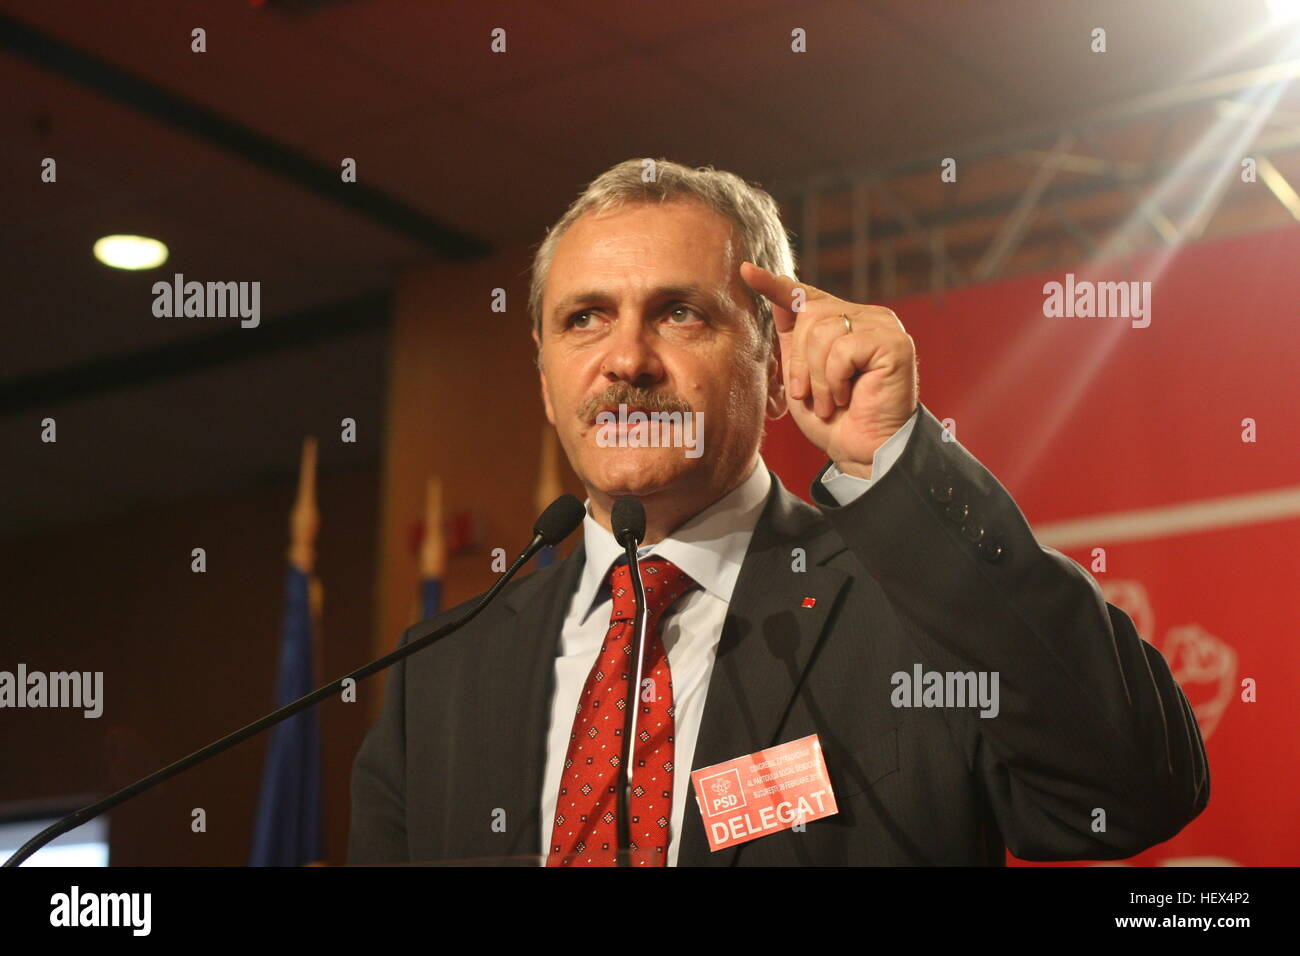 BUCHAREST, ROMANIA - February 20, 2010: Liviu Dragnea, speaks at the National Congress of Social Democrat Party - Stock Image